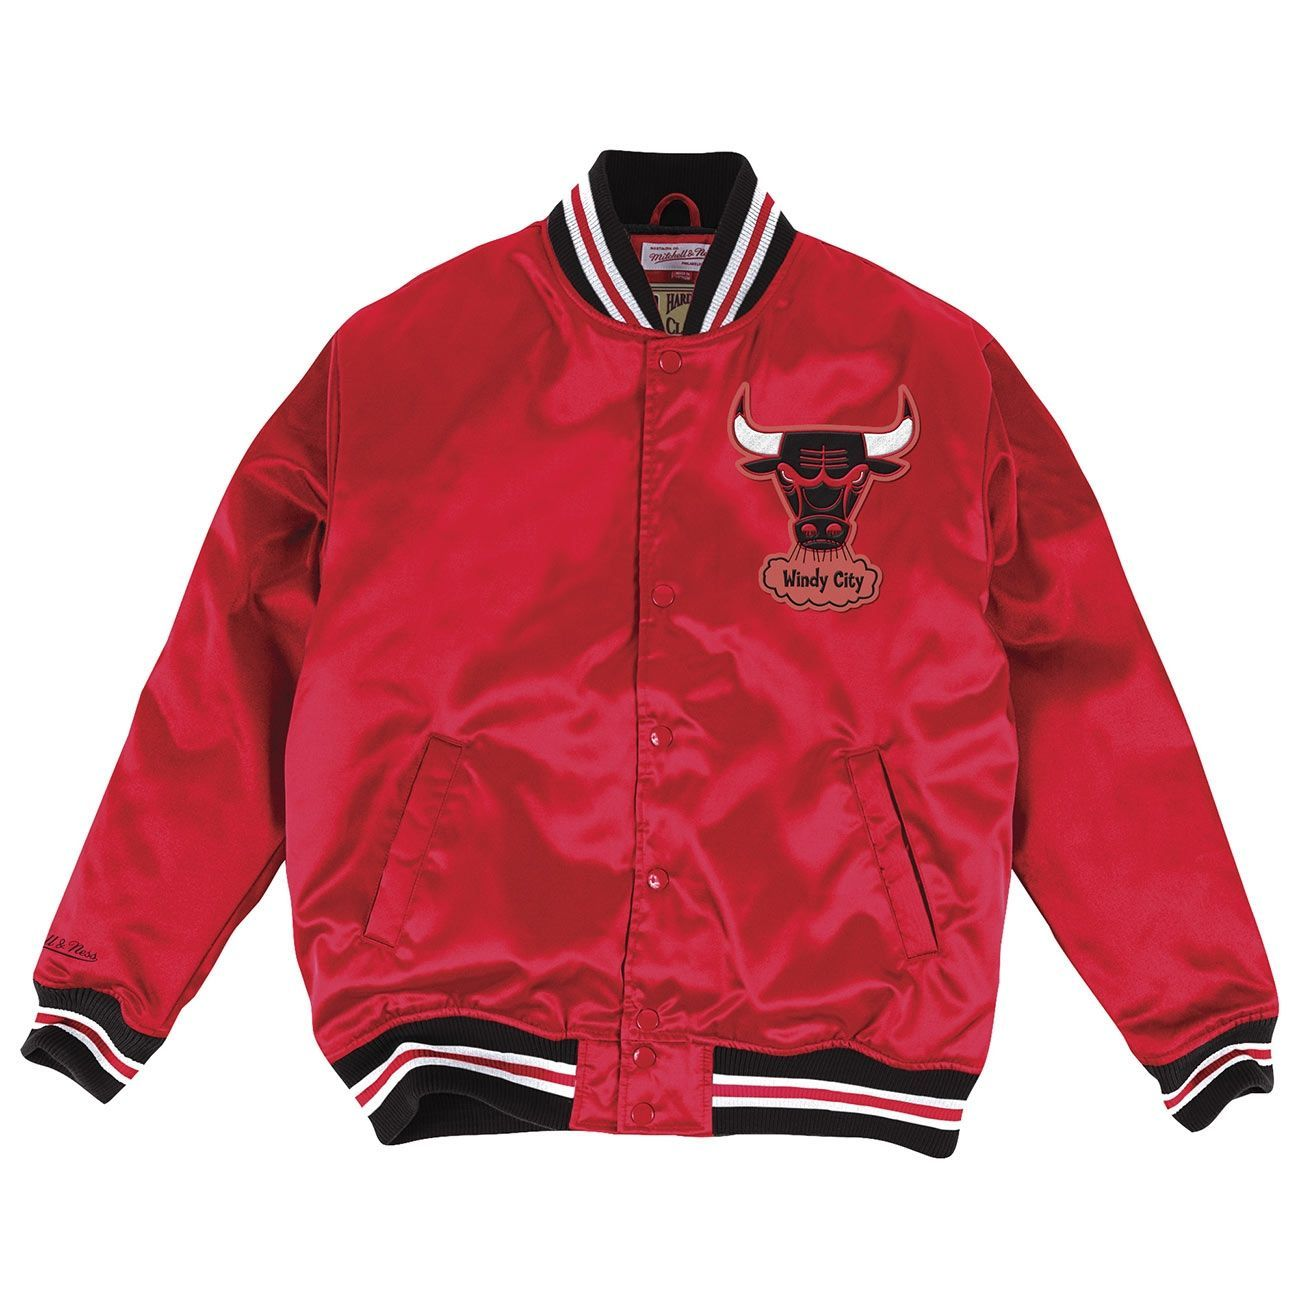 mitchell ness chicago bulls hwc satin nba jacke rot. Black Bedroom Furniture Sets. Home Design Ideas